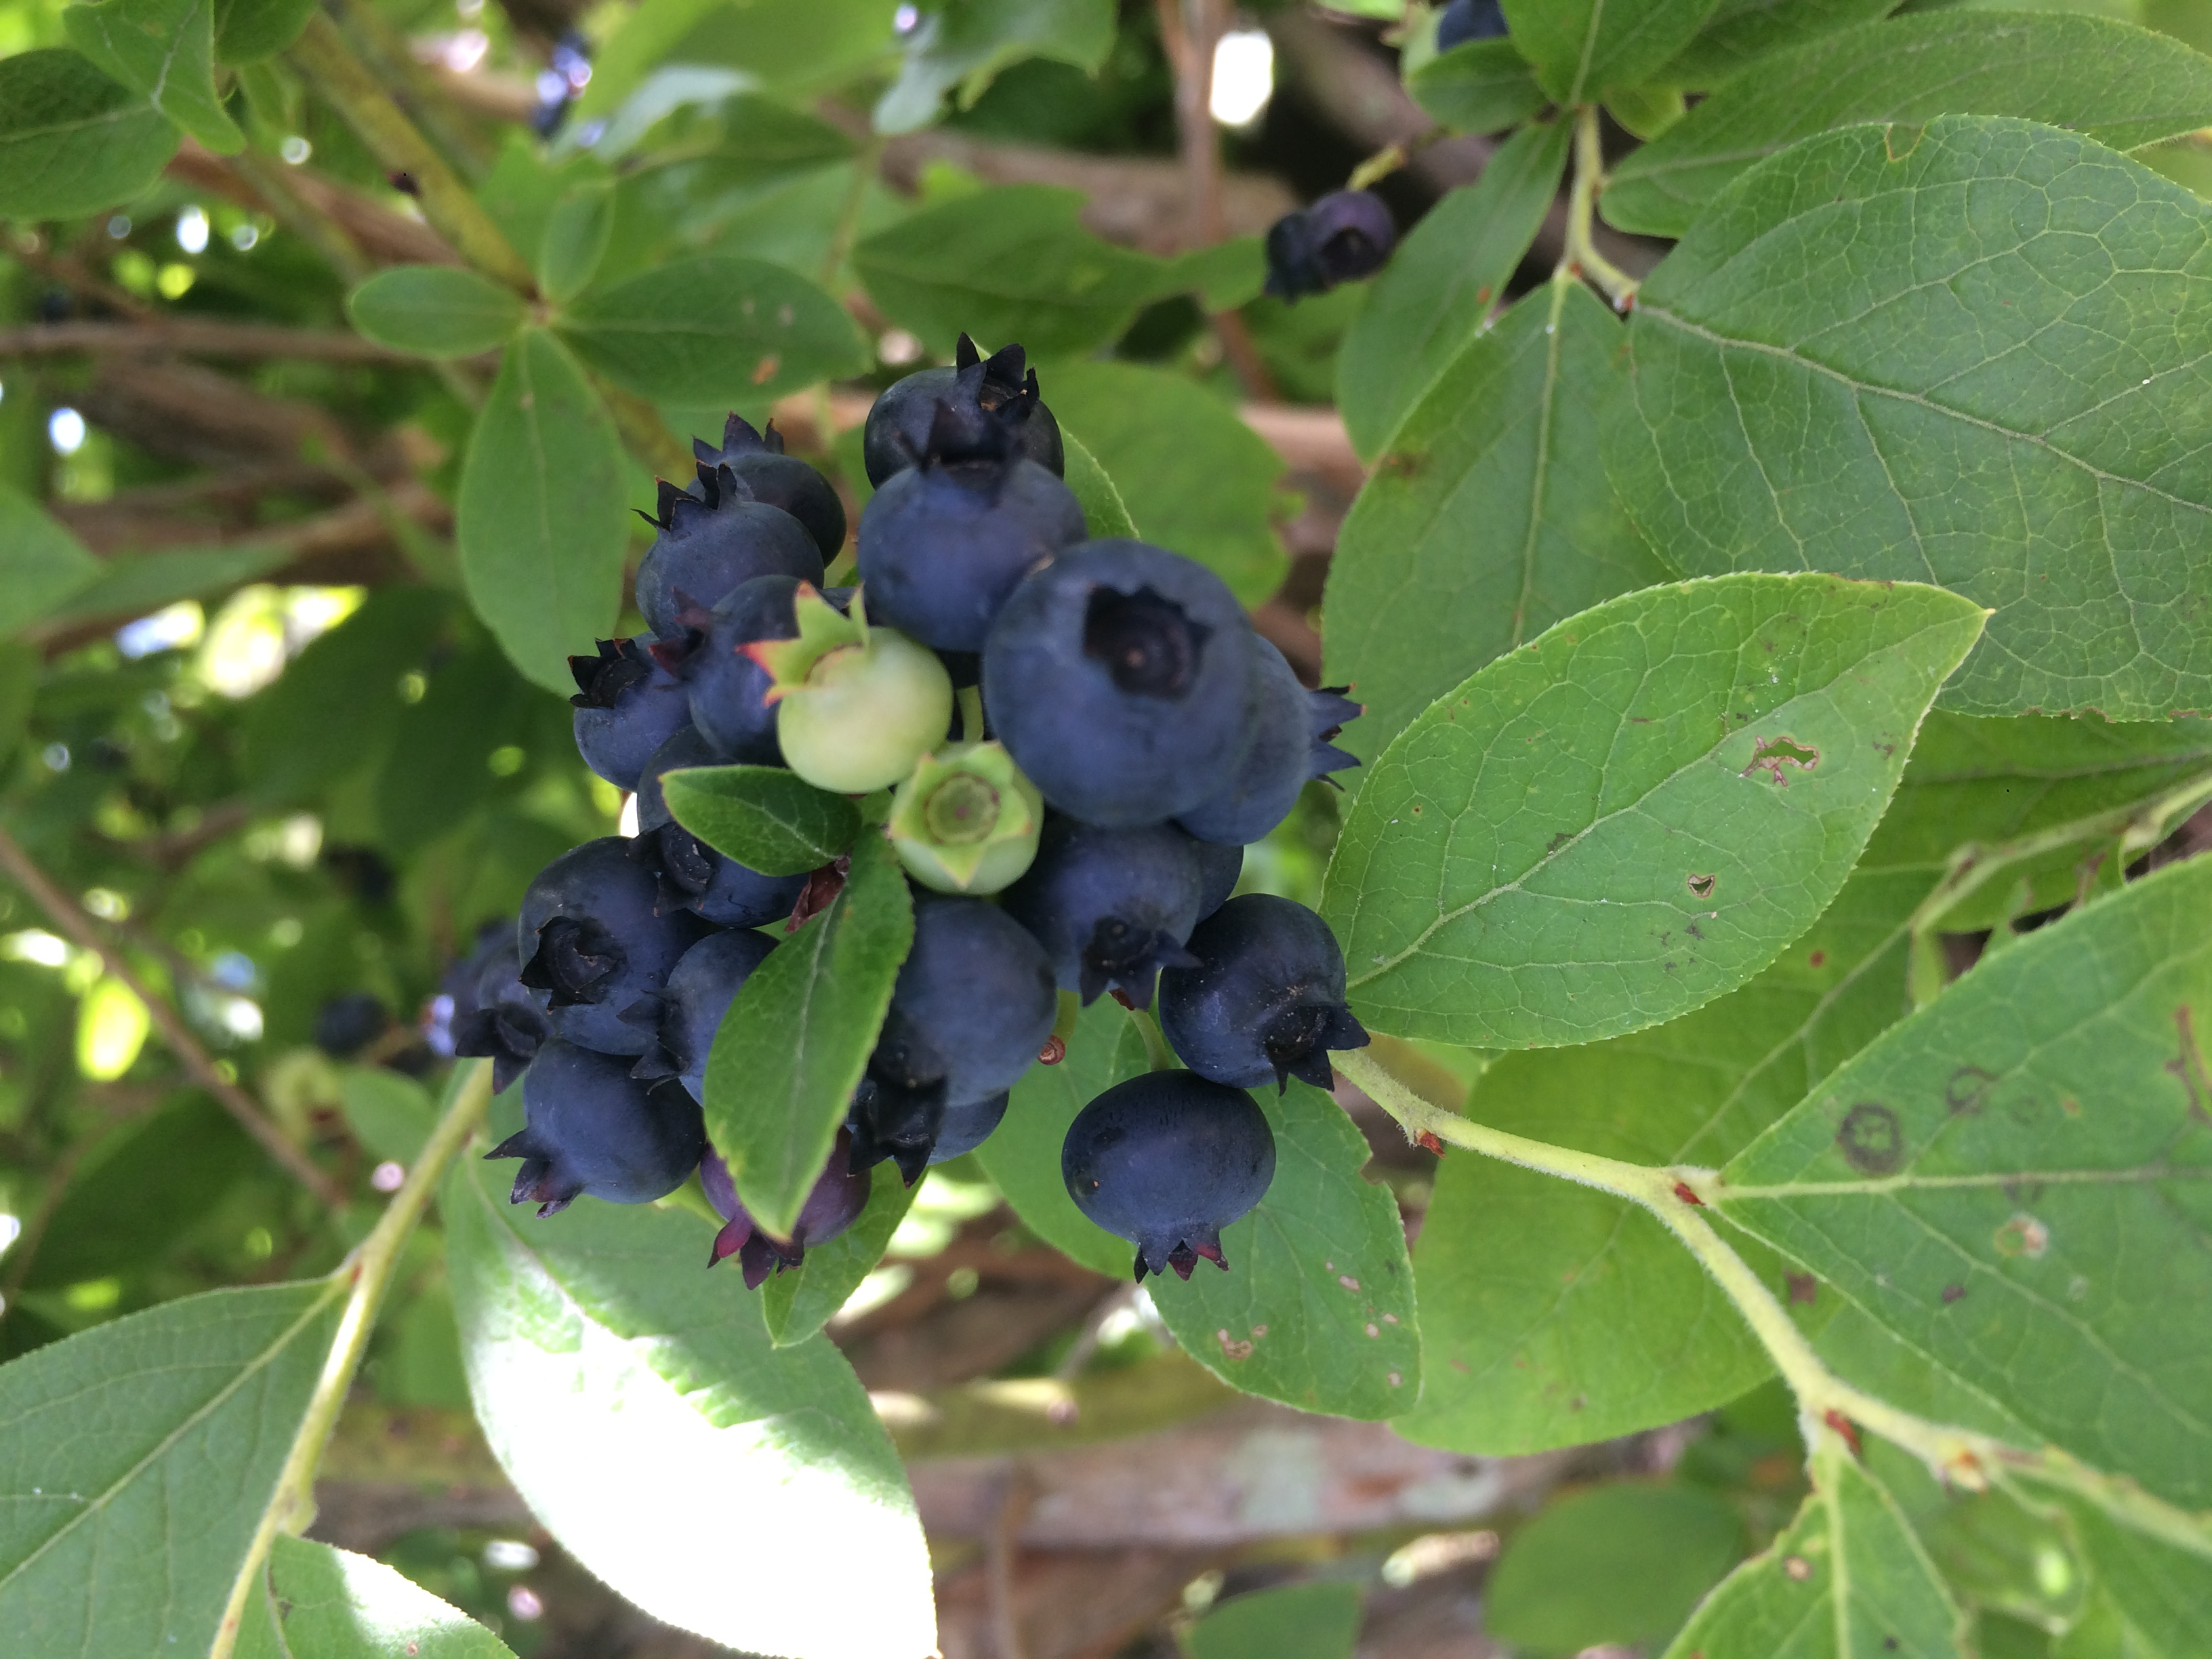 While most of our berries are small in size, some of the varieties are larger, with the same intense flavor.